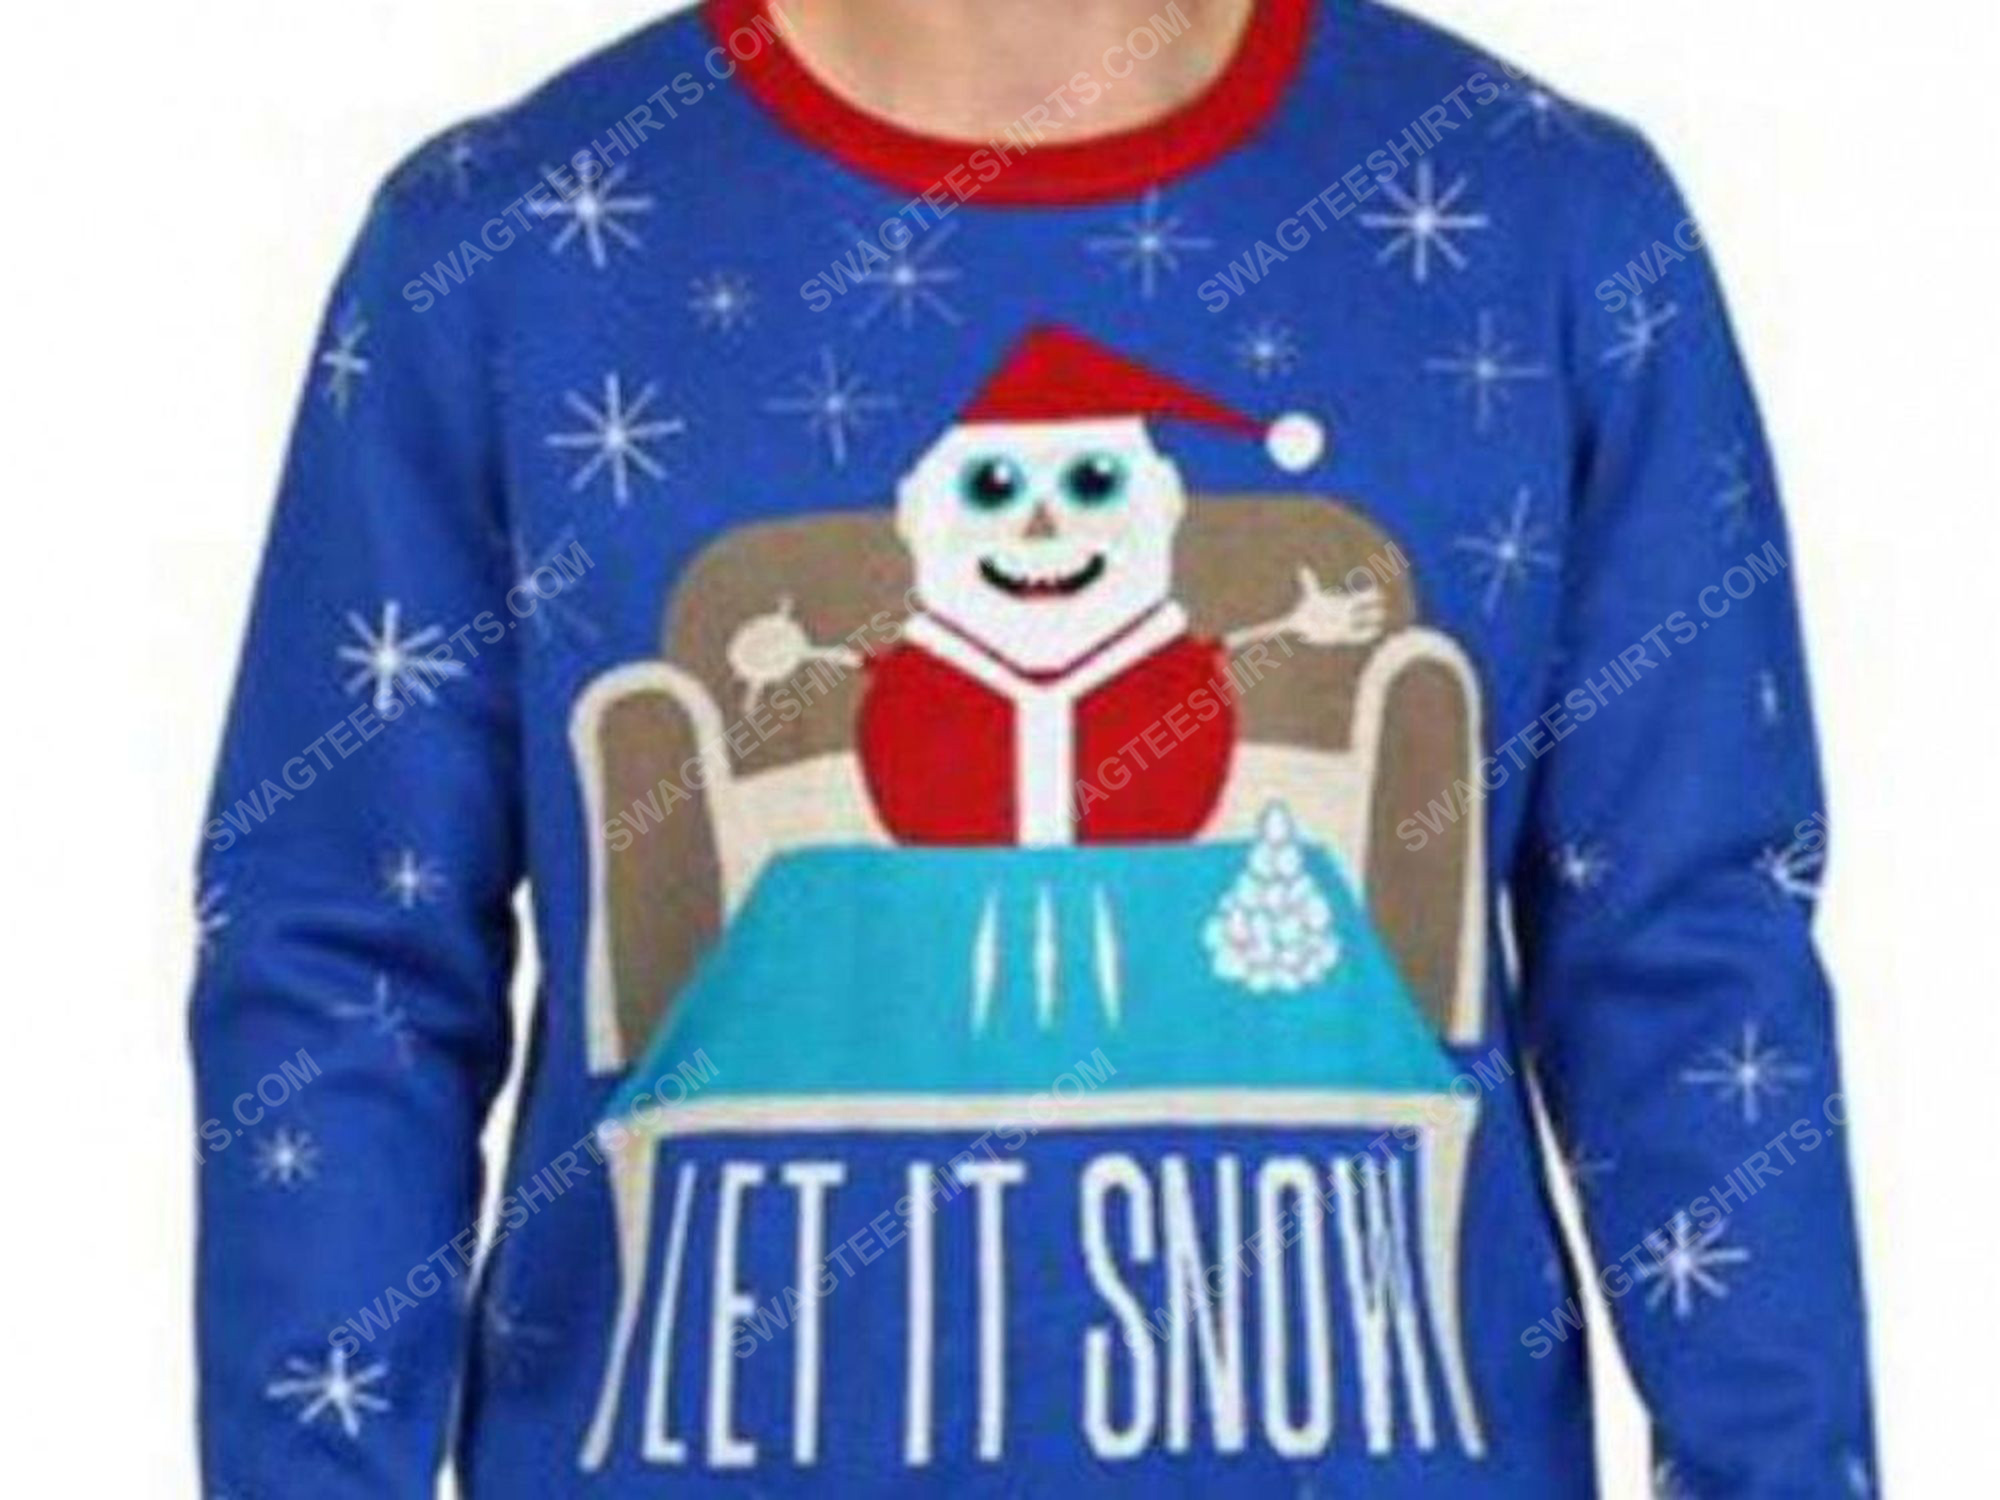 Christmas party let it snow cocaine full print ugly christmas sweater